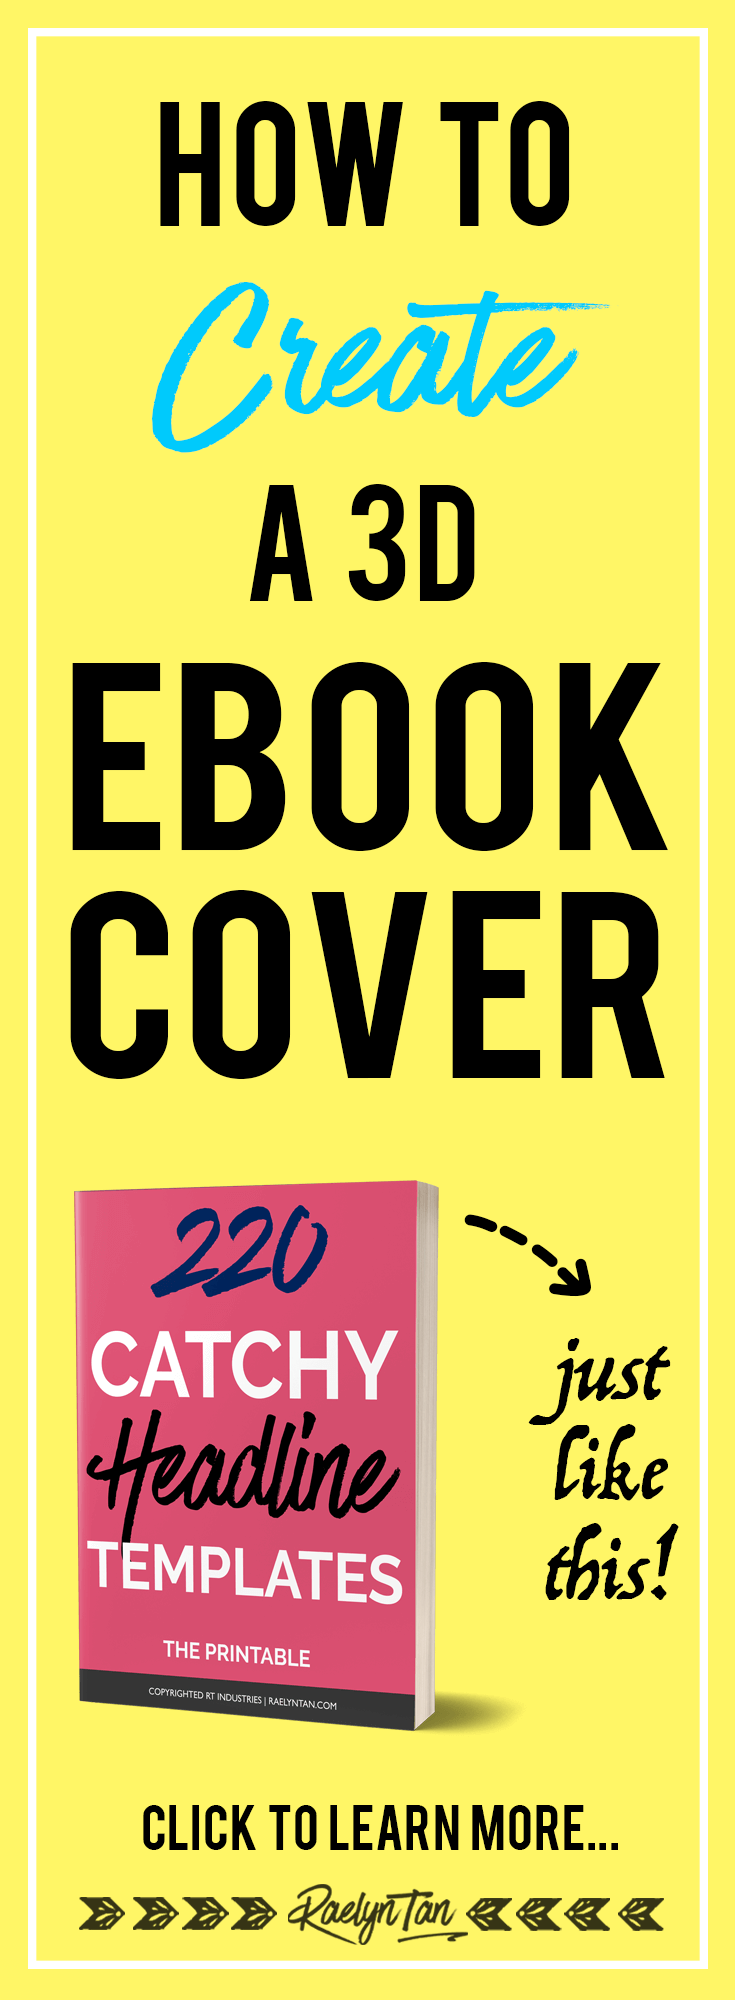 Yay! How to make a 3D ebook cover in 10 minutes: DIY your ebook design and create a professional looking ebook cover in 10 minutes, using photoshop! (for free)